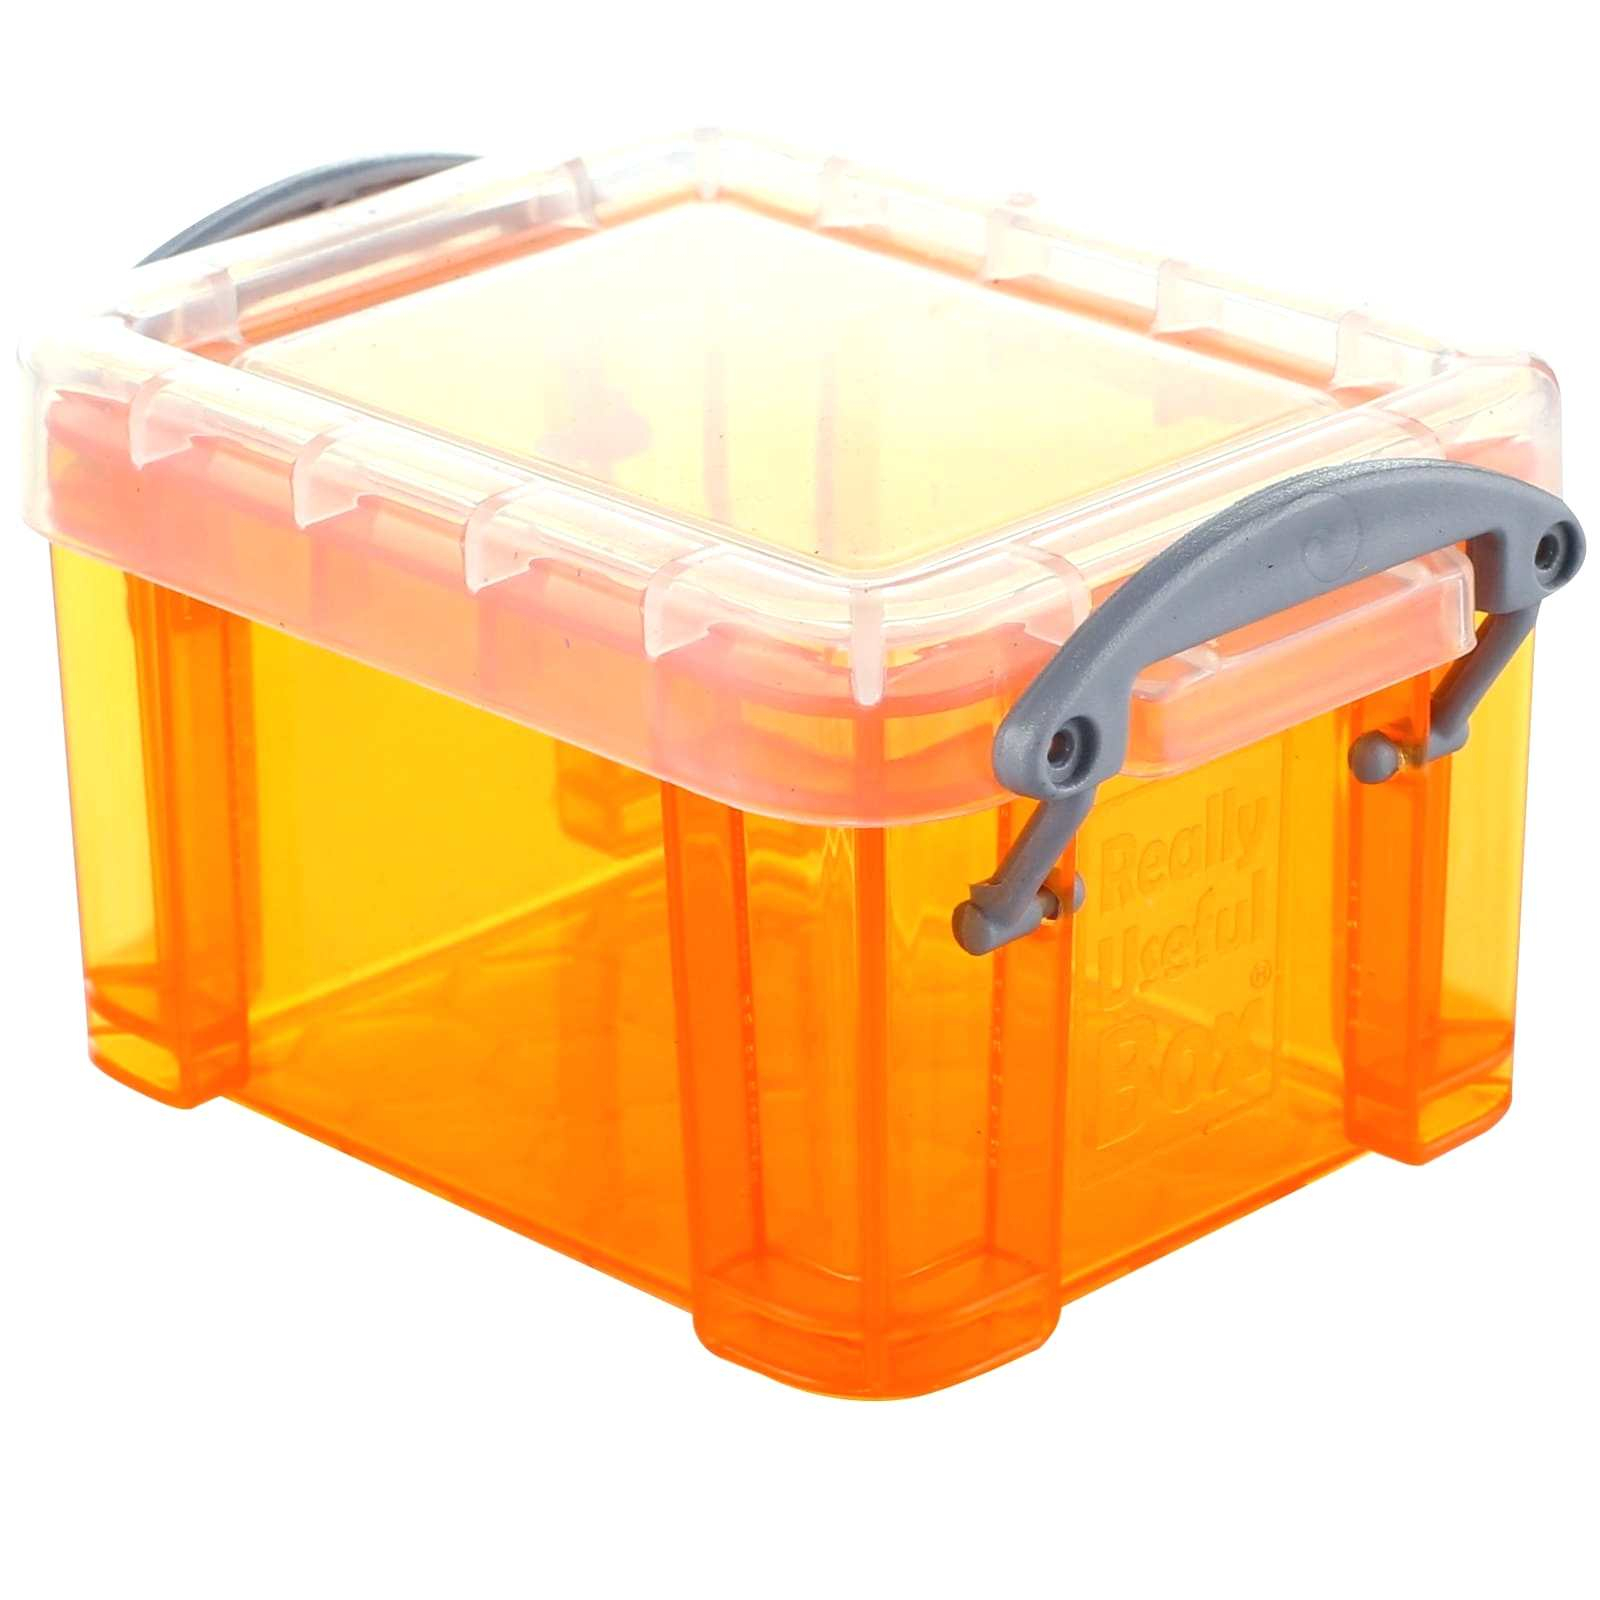 Orange Rubbermaid Storage Containers Orange Rubbermaid Storage Bins intended for proportions 1600 X 1600